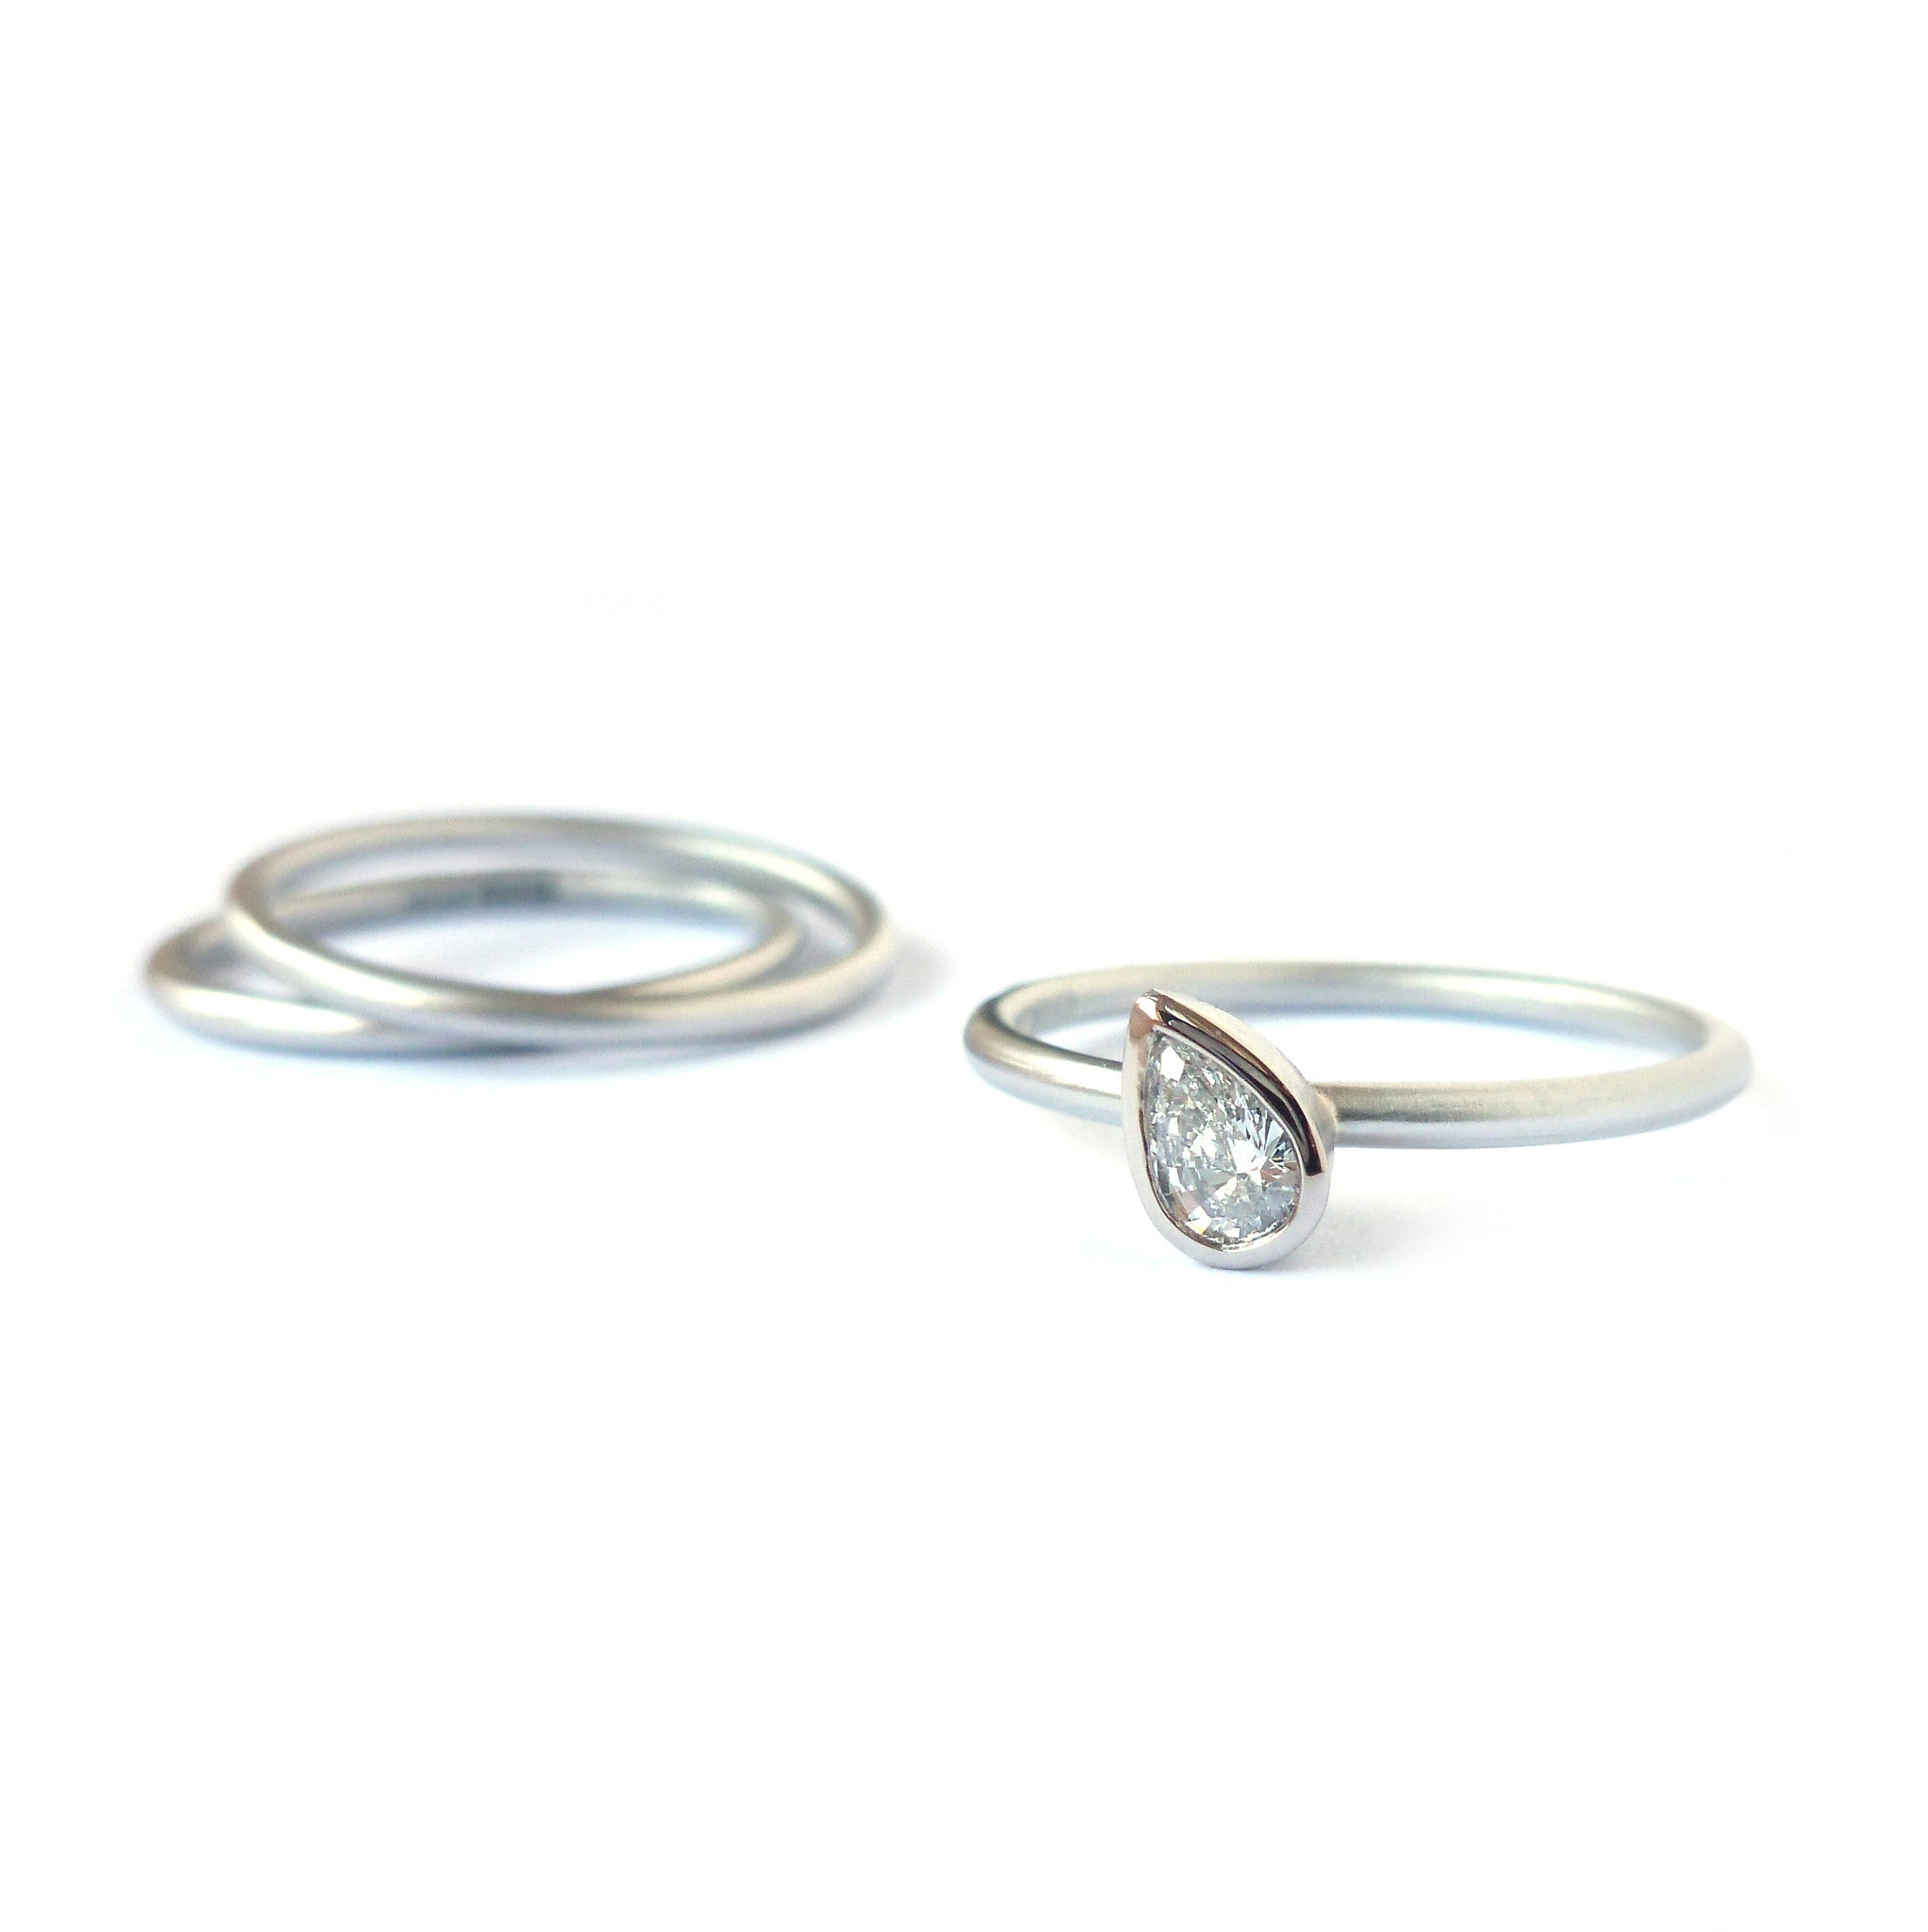 gold in v white diamond wedding frillybylily shop ring with fairtrade rings shaped curve